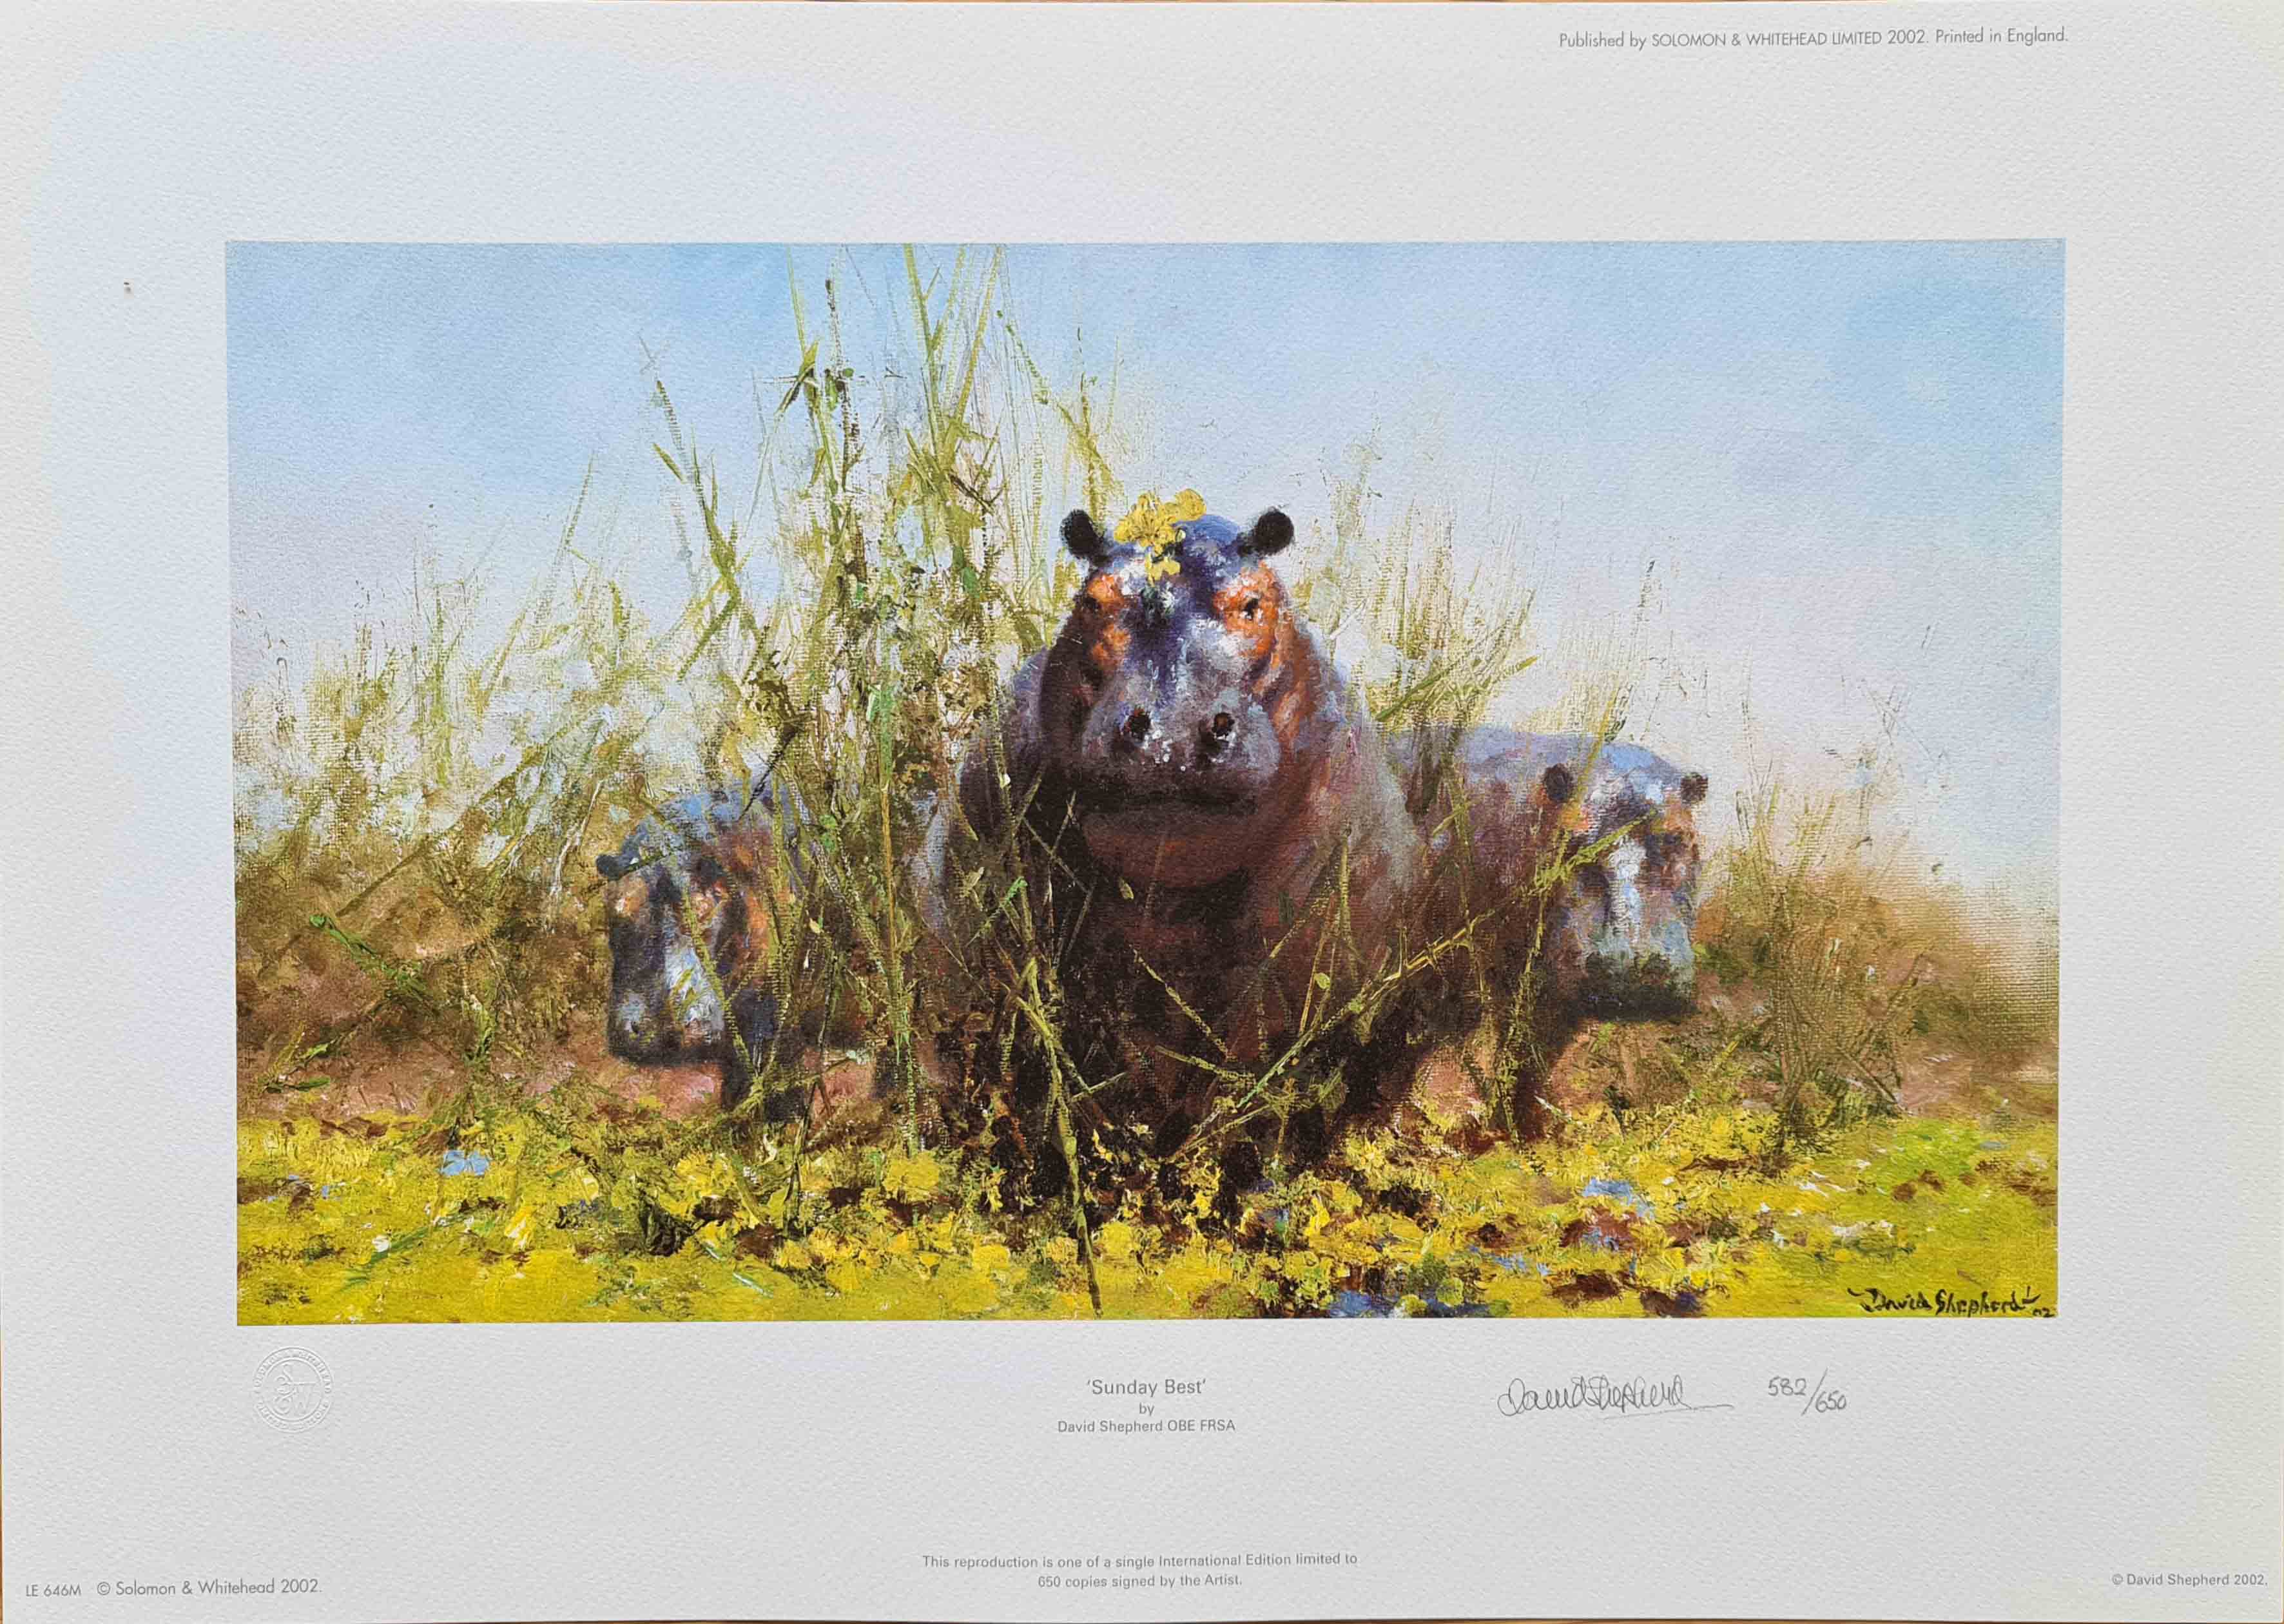 David Shepherd, hippos, signed limited edition print